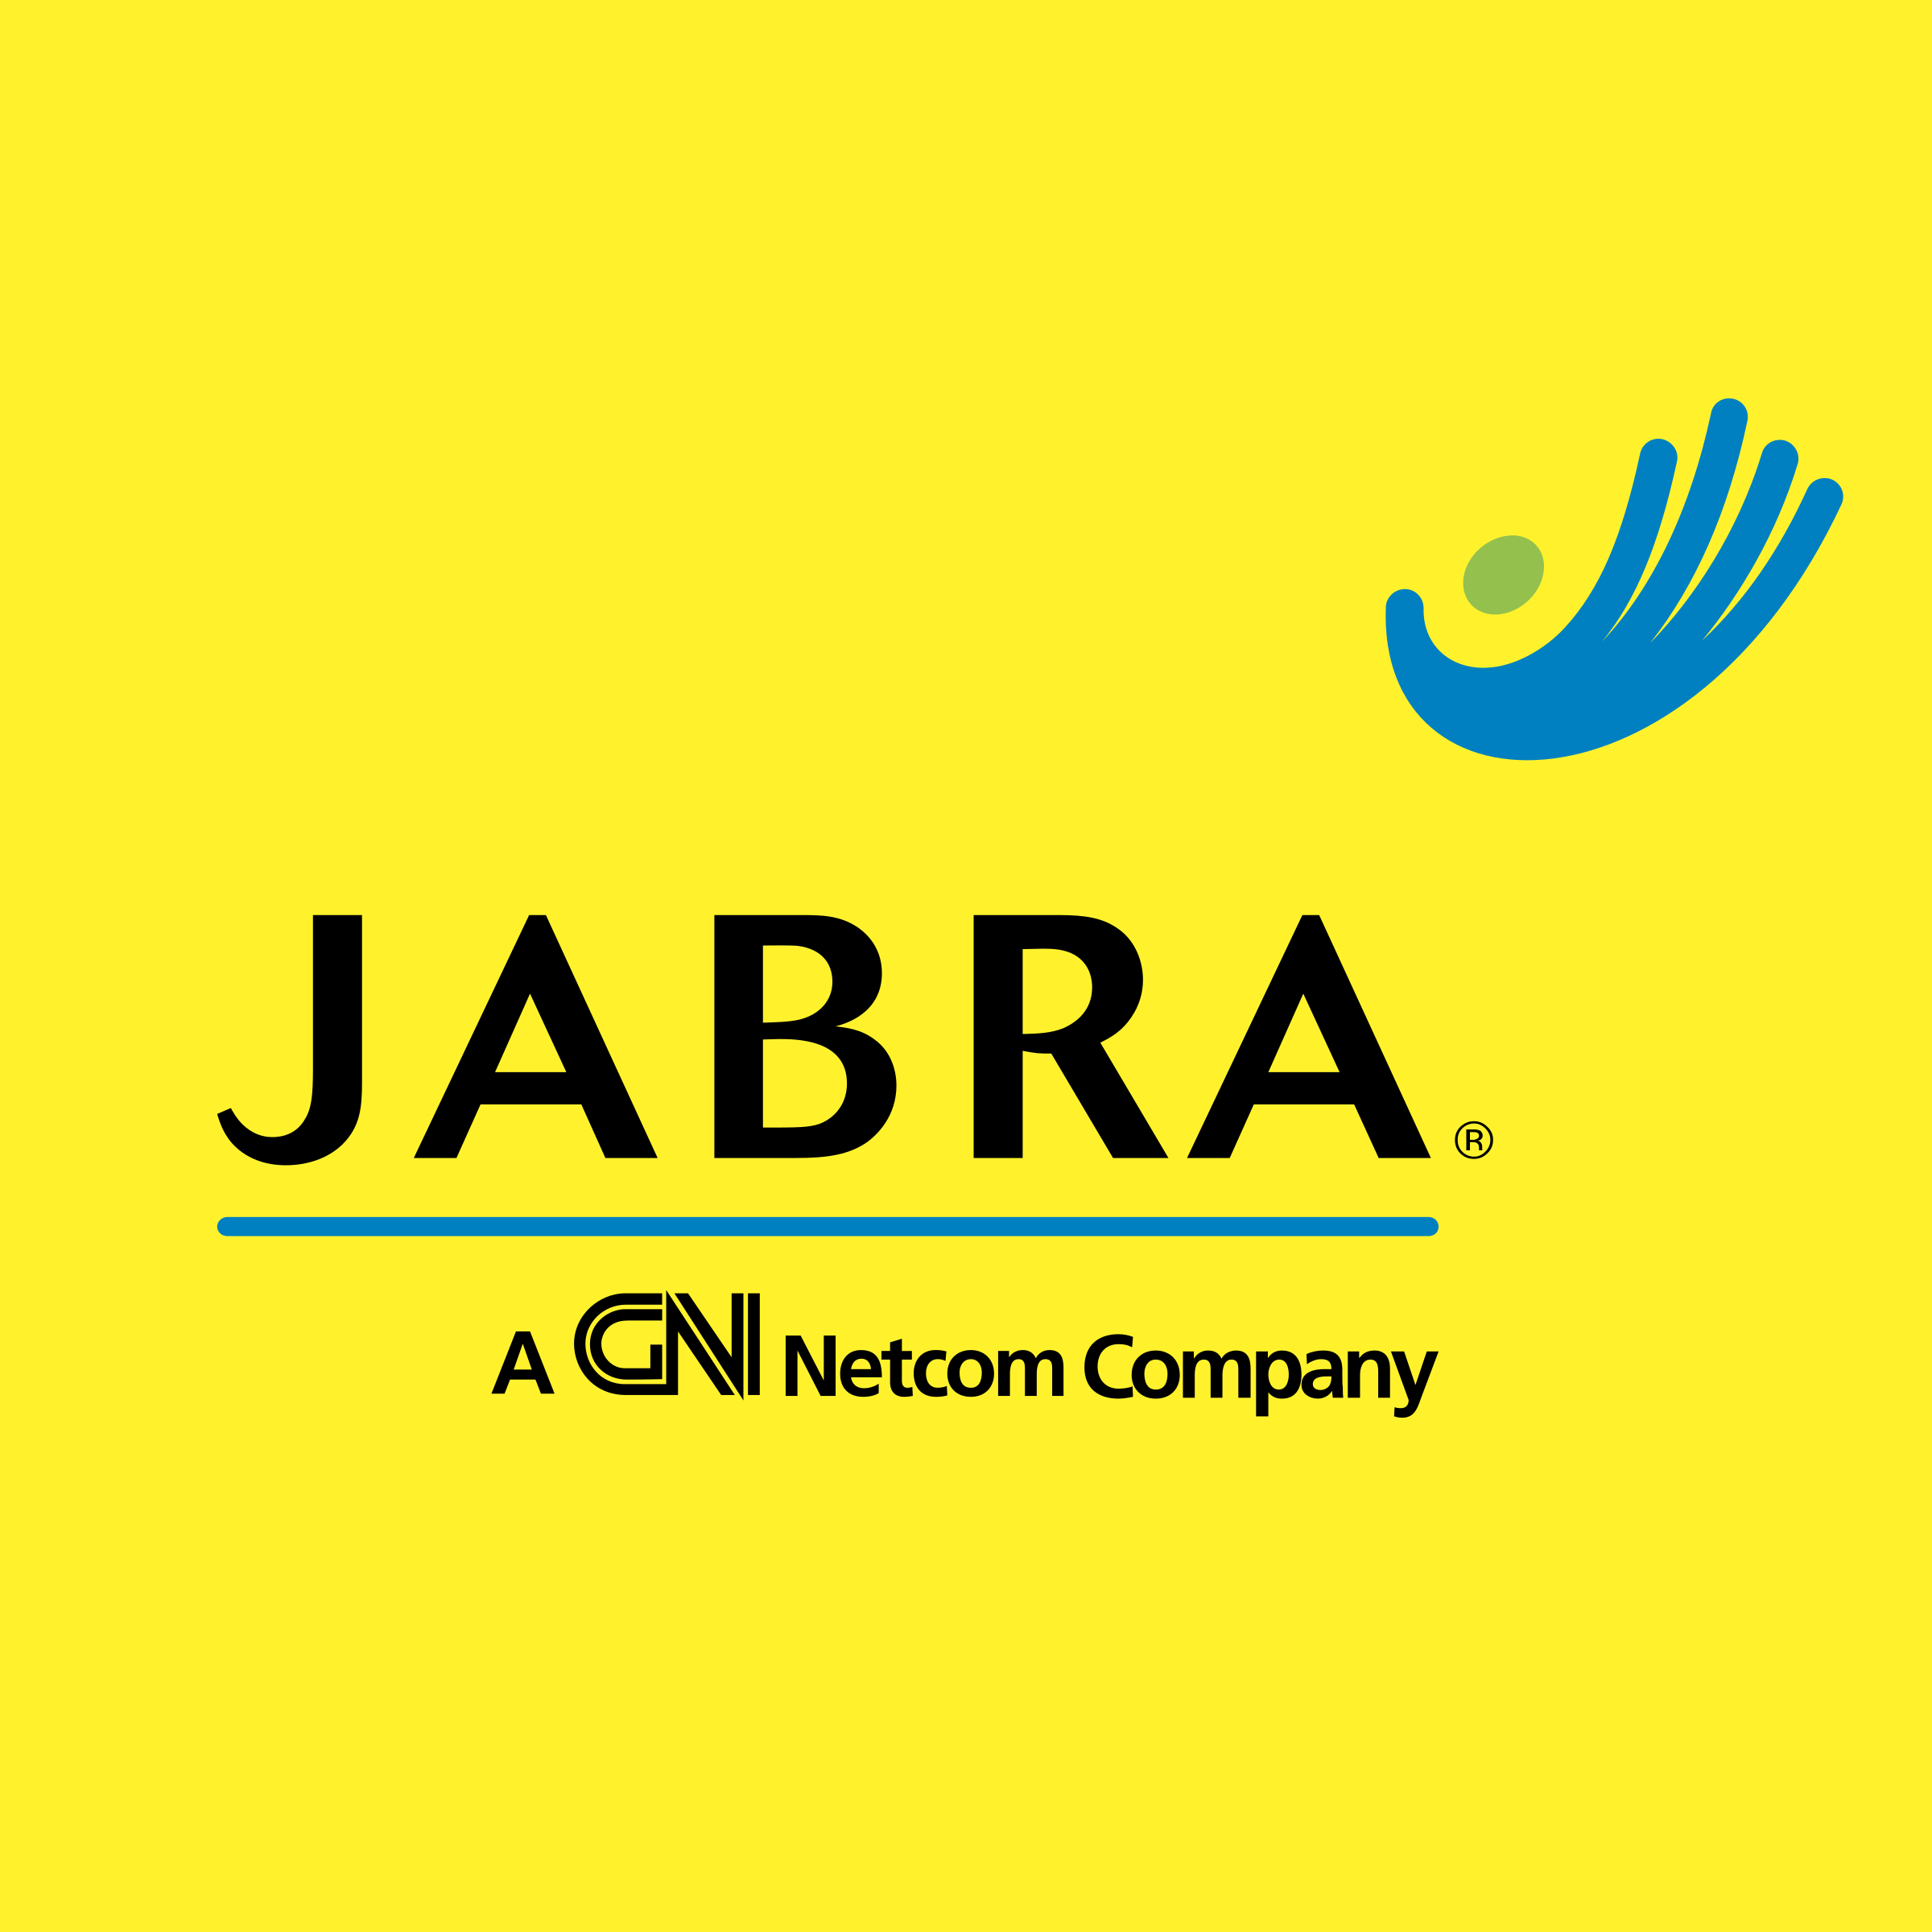 Jabra Logo PNG Transparent & SVG Vector.